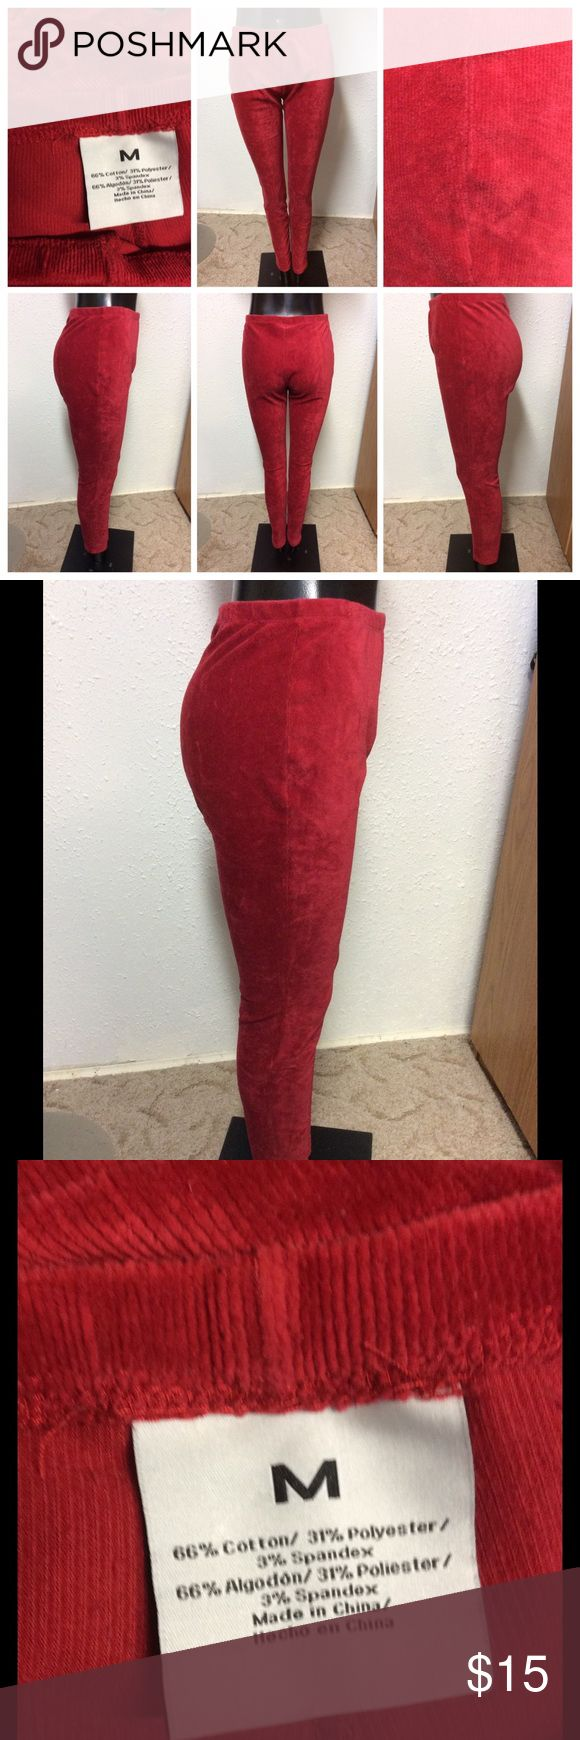 Red Ribbed Leggings Medium cotton polyester spandex blend. I think a larger medium could wear these as they fit generously. Nicole's Resale Pants Leggings